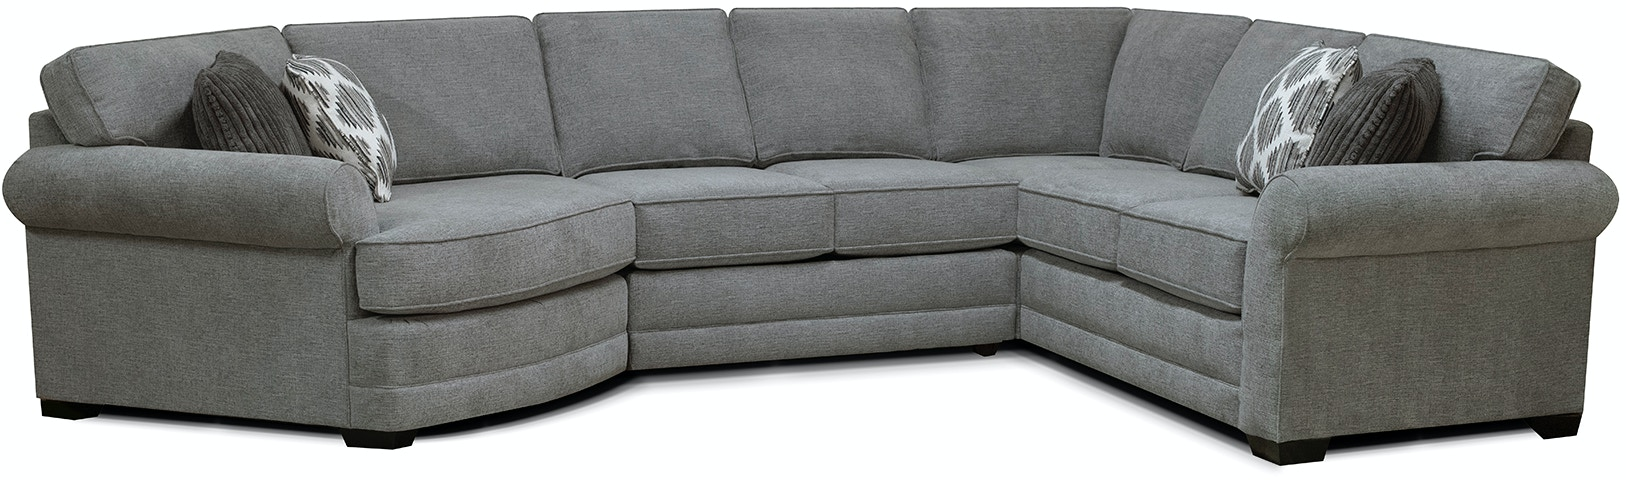 England Living Room Brantley Sectional